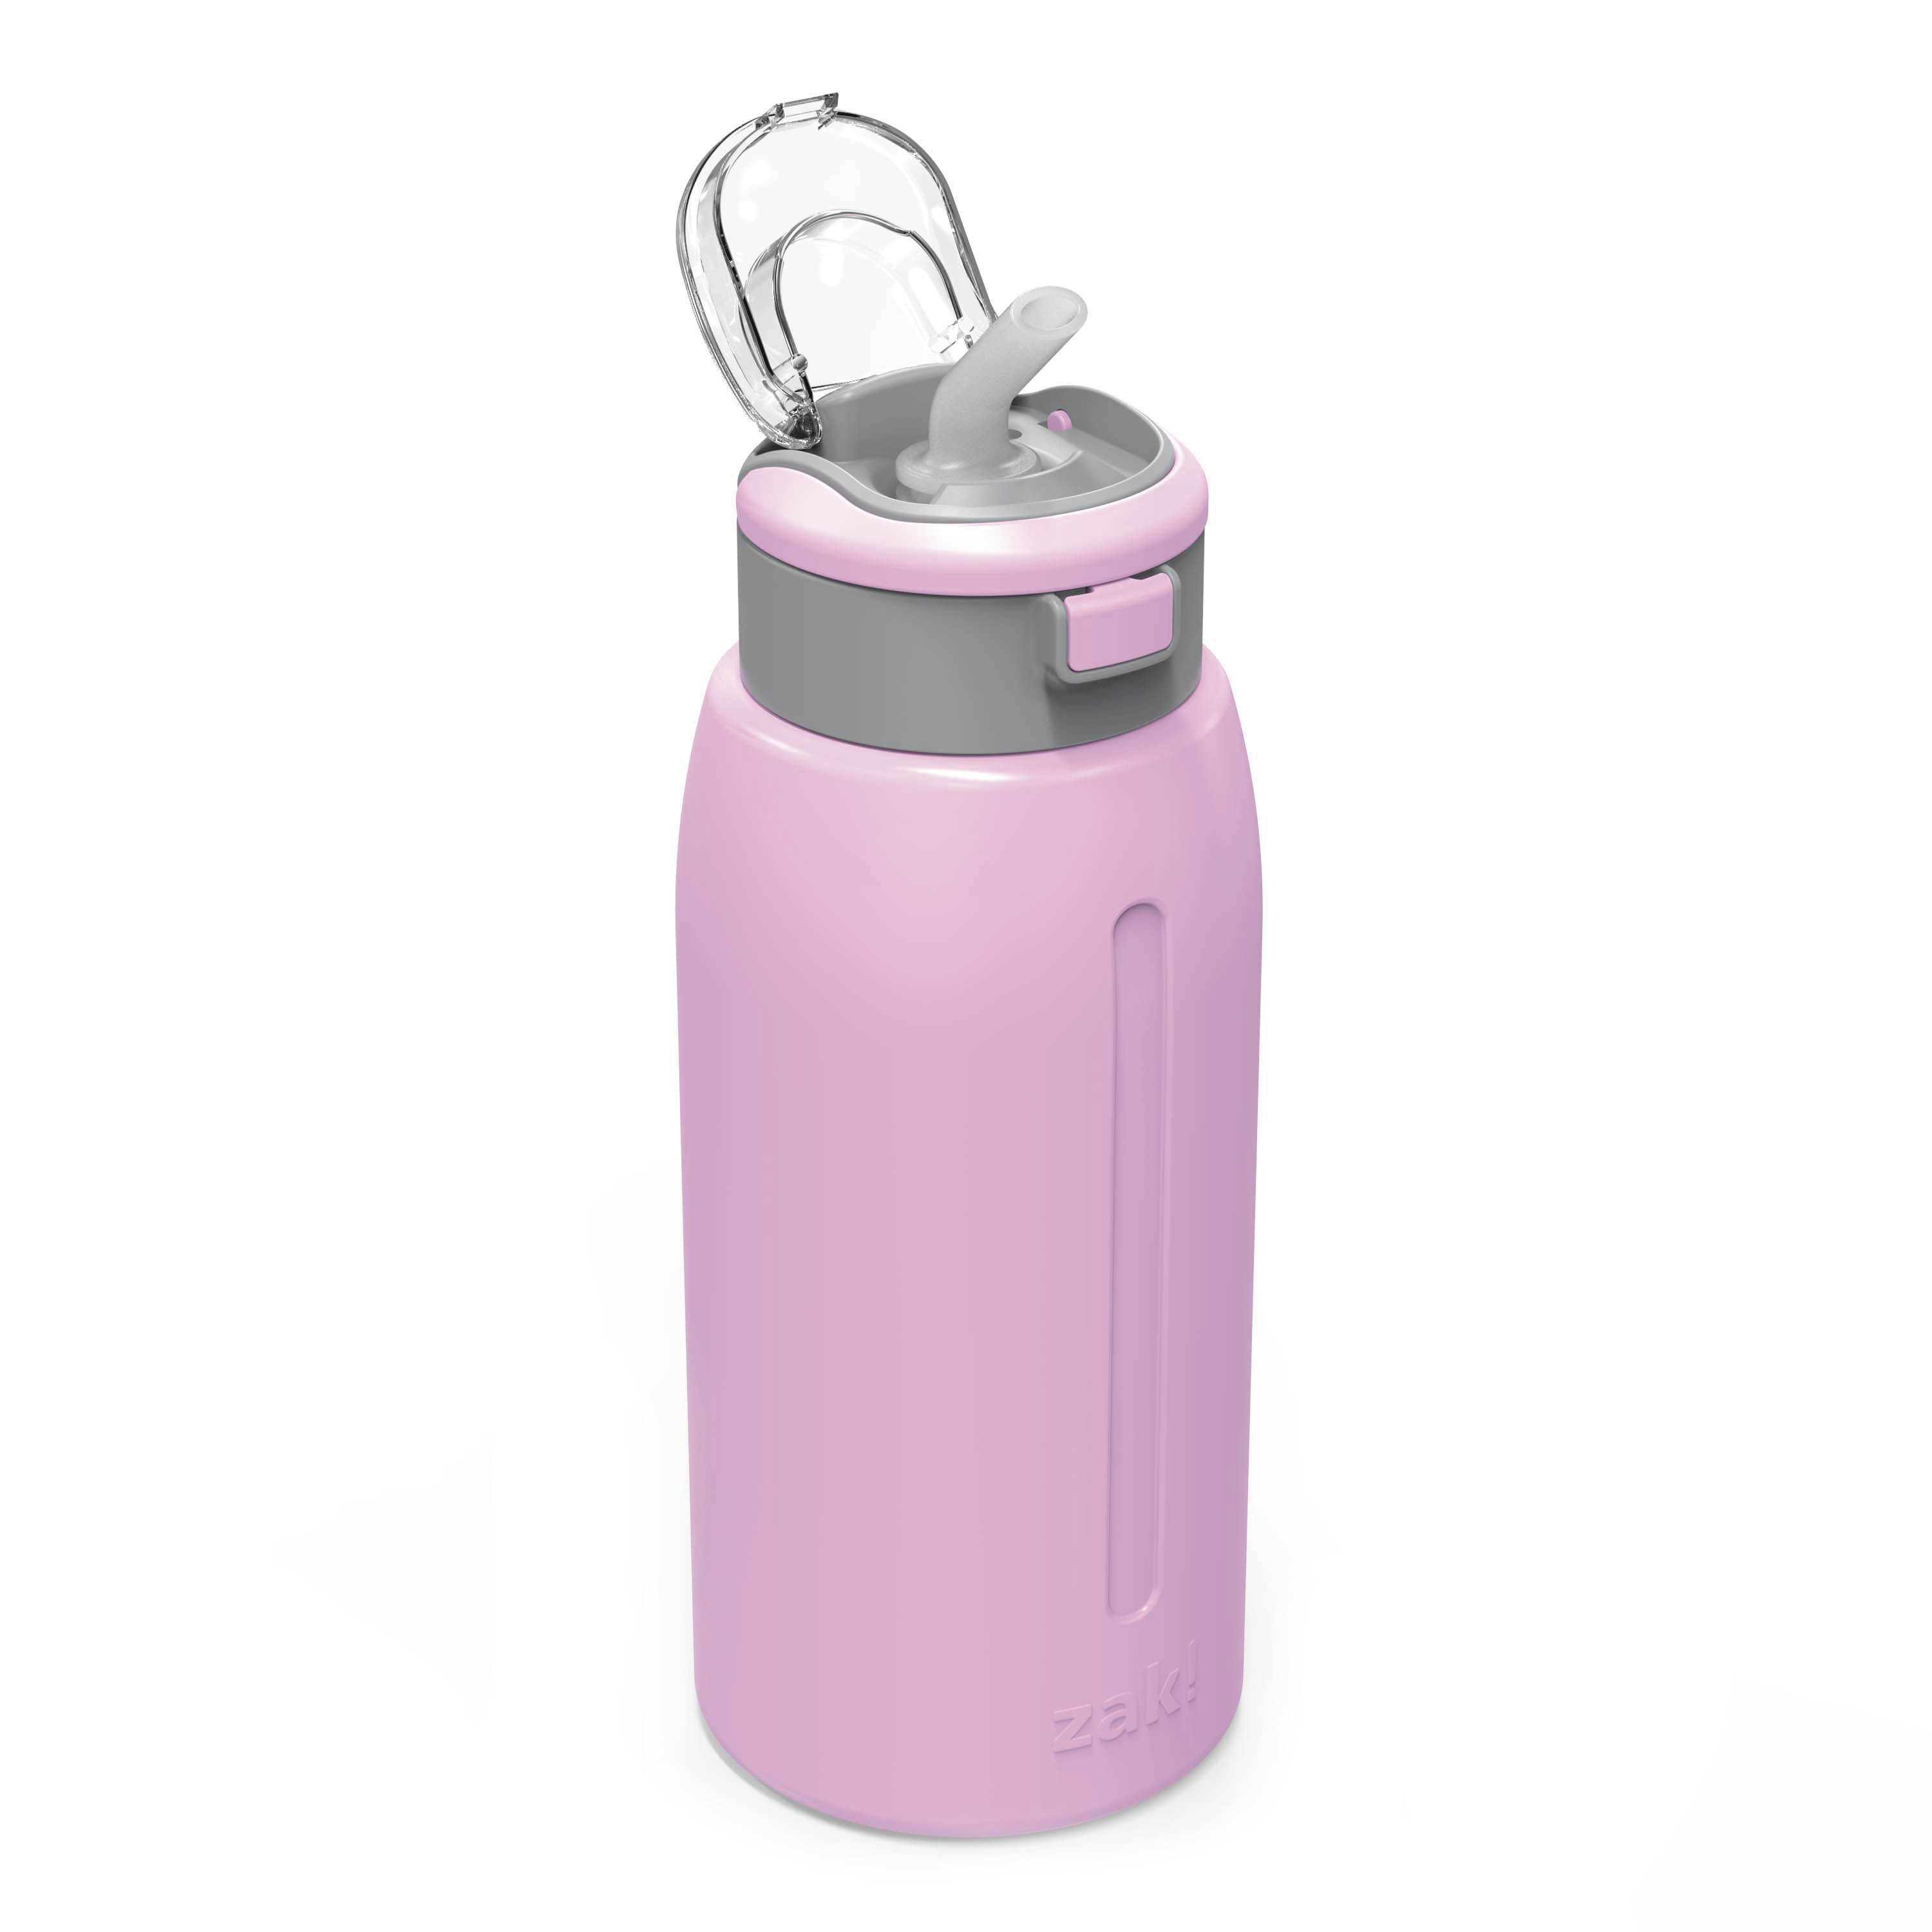 Genesis 32 ounce Stainless Steel Water Bottles, Lilac slideshow image 4